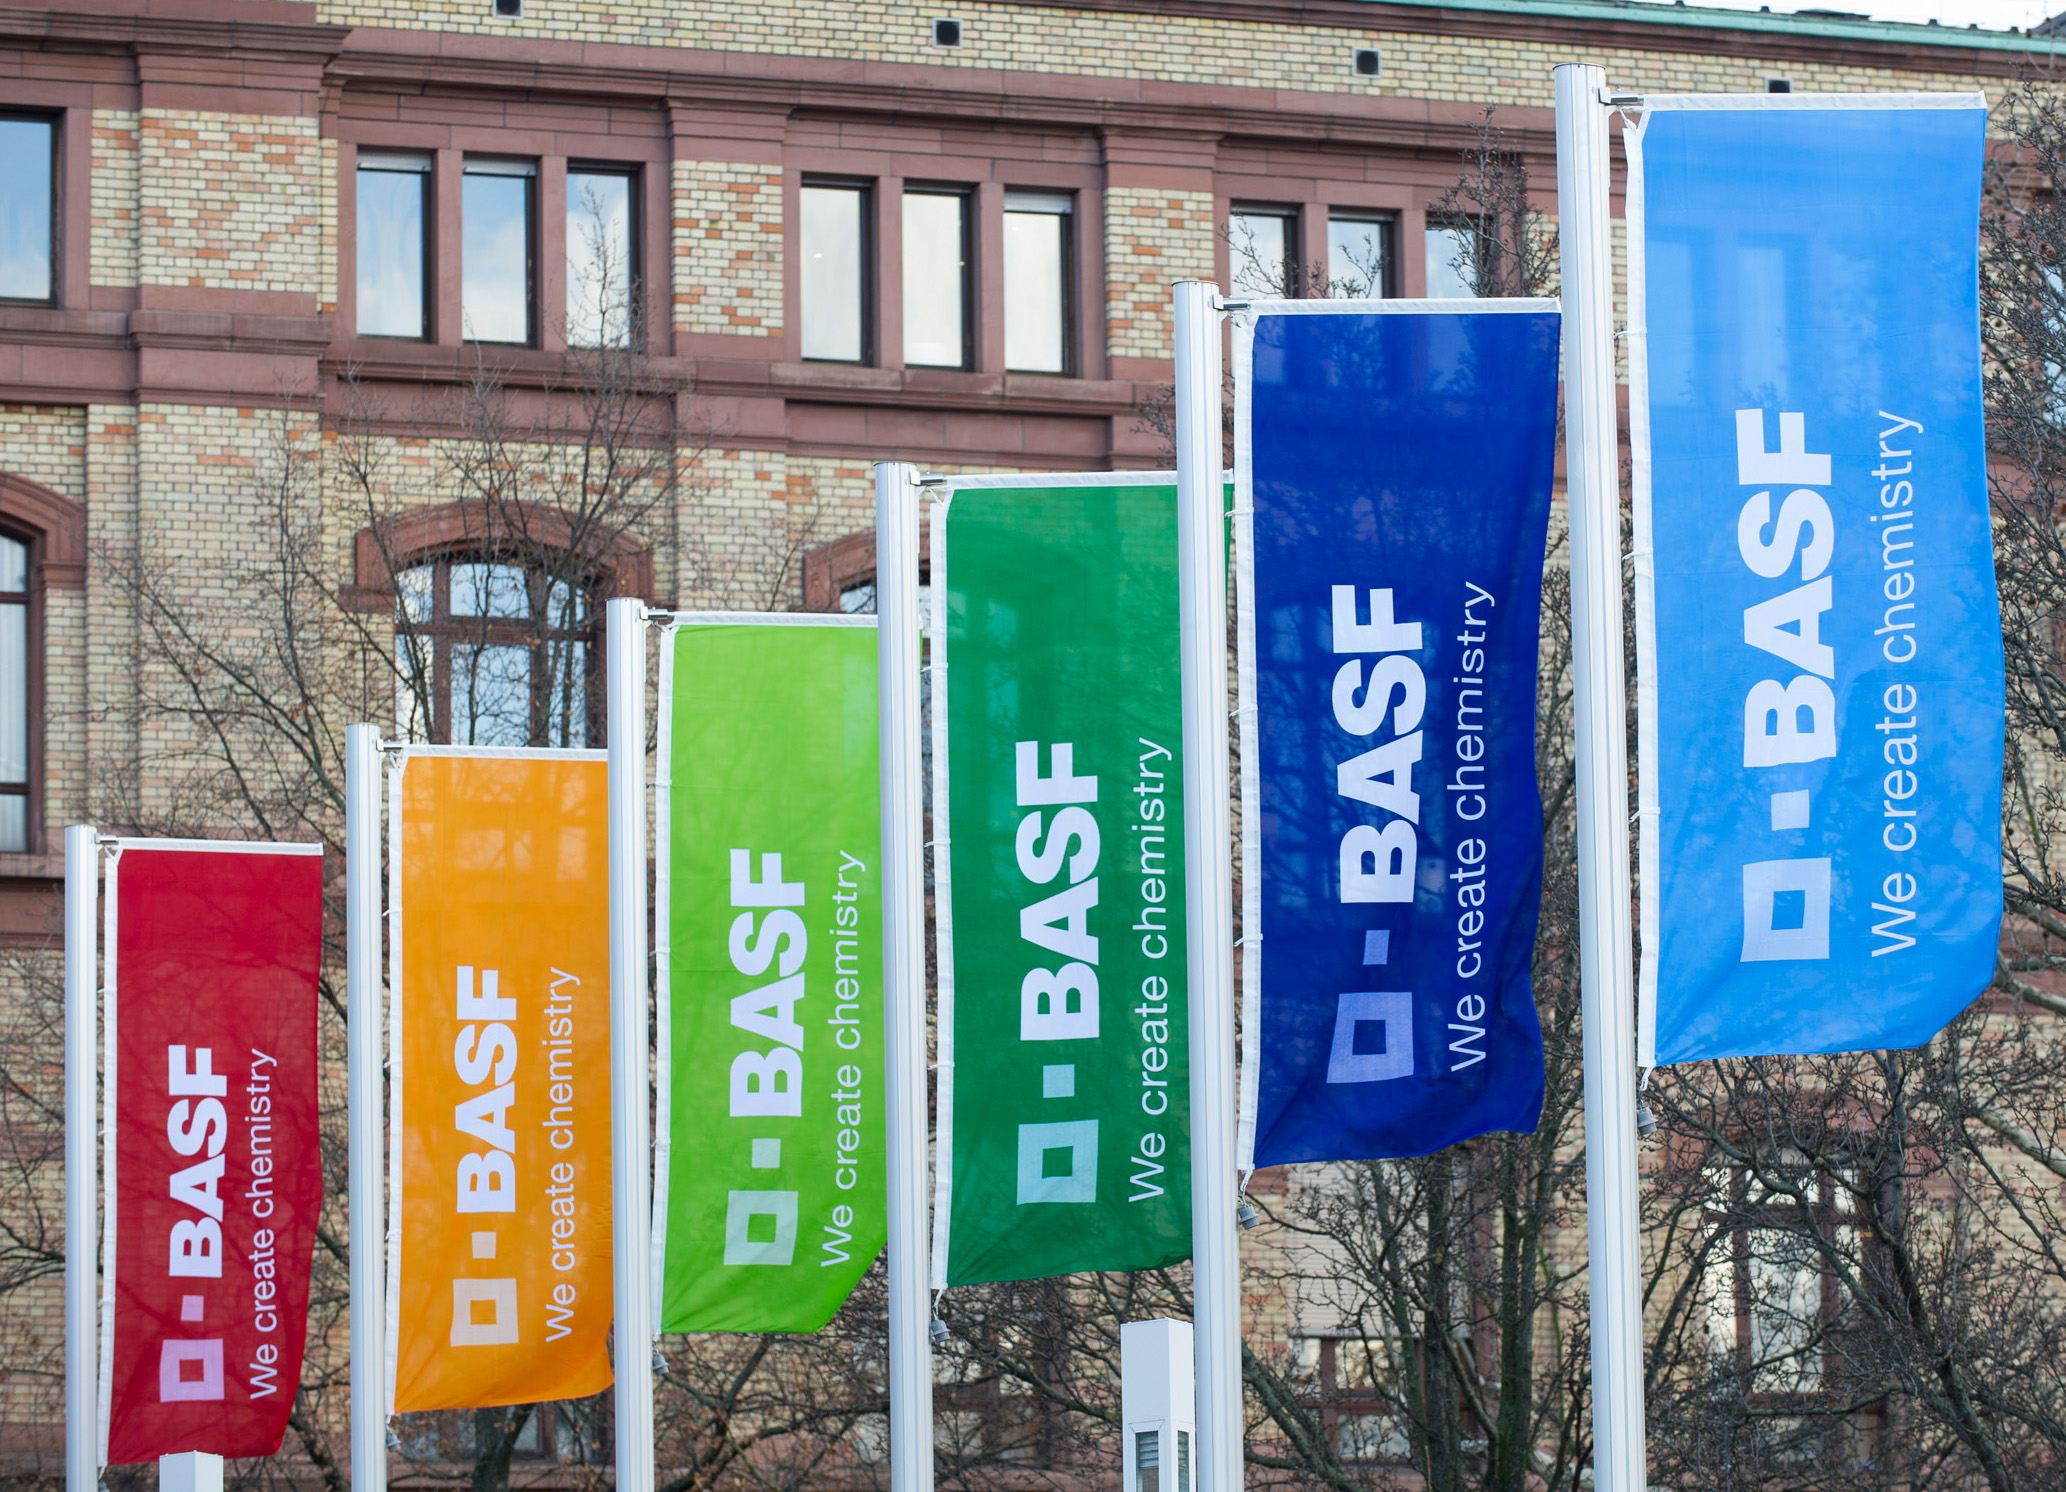 BASF's new strategy aims for both profitable and CO2-neutral growth